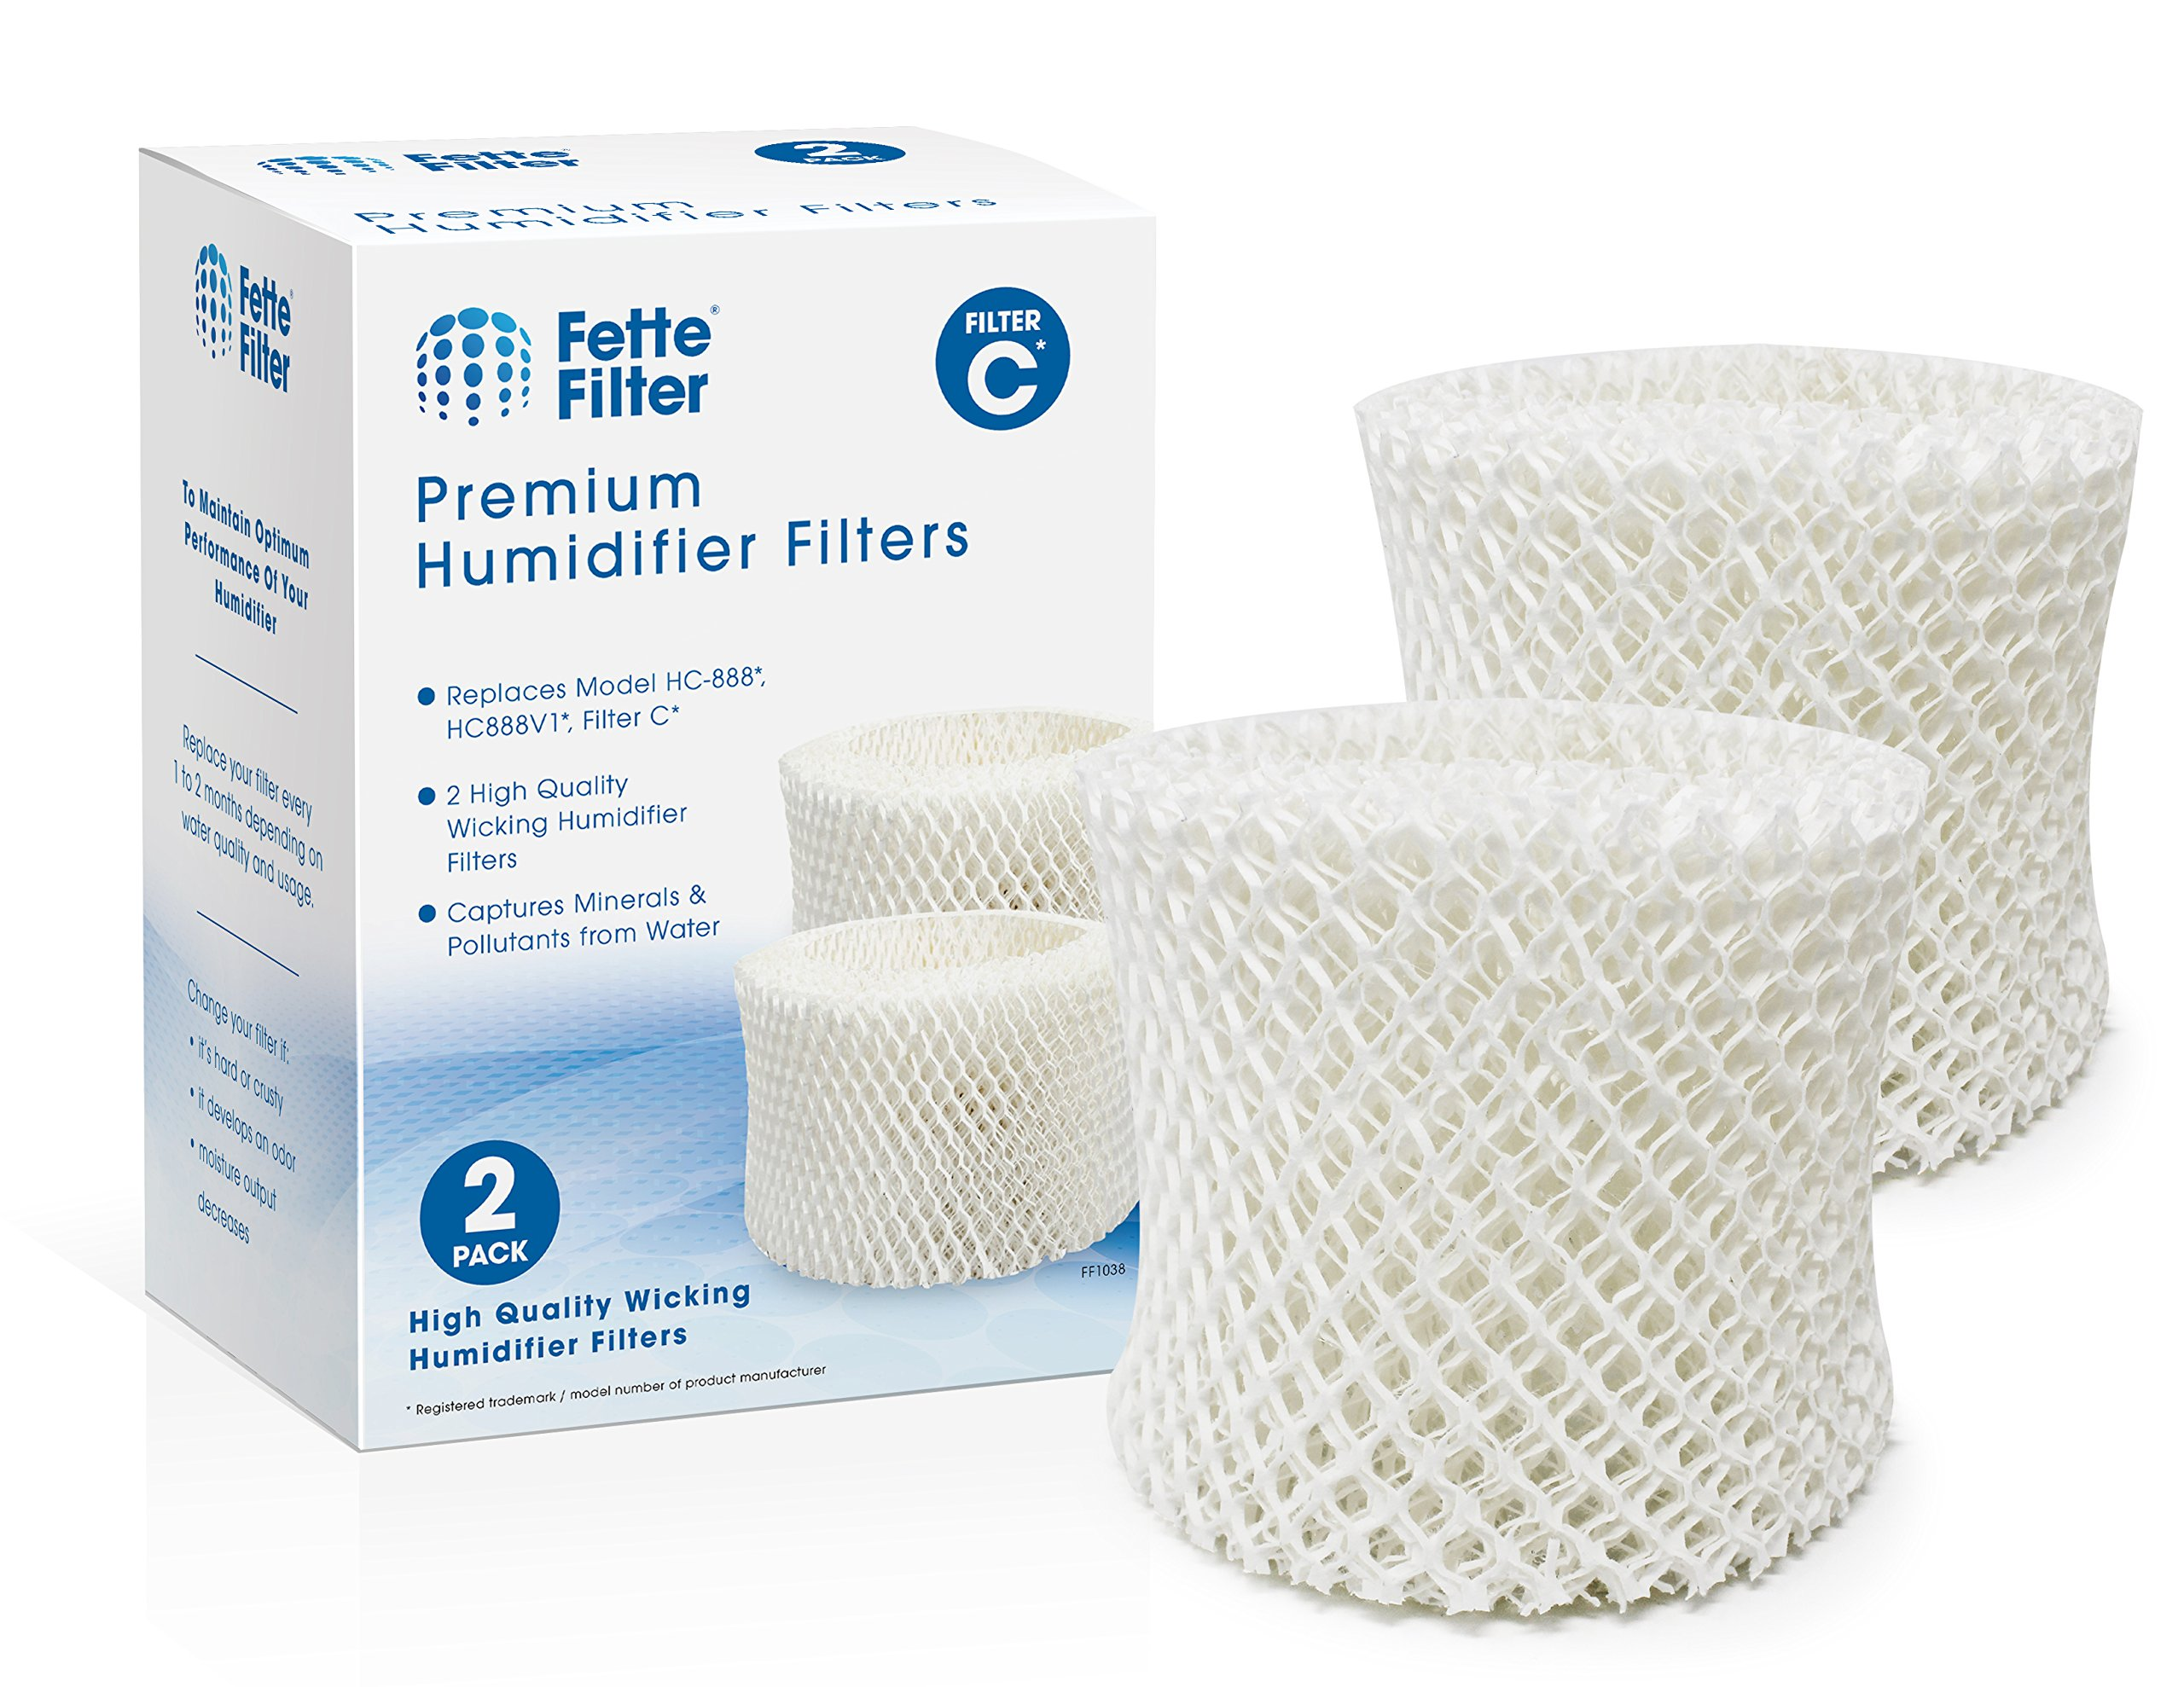 Fette Filter 2-Pack Humidifier Wicking Filters. Compatible with HC-888, HC-888N, Filter C. Pack of 2.